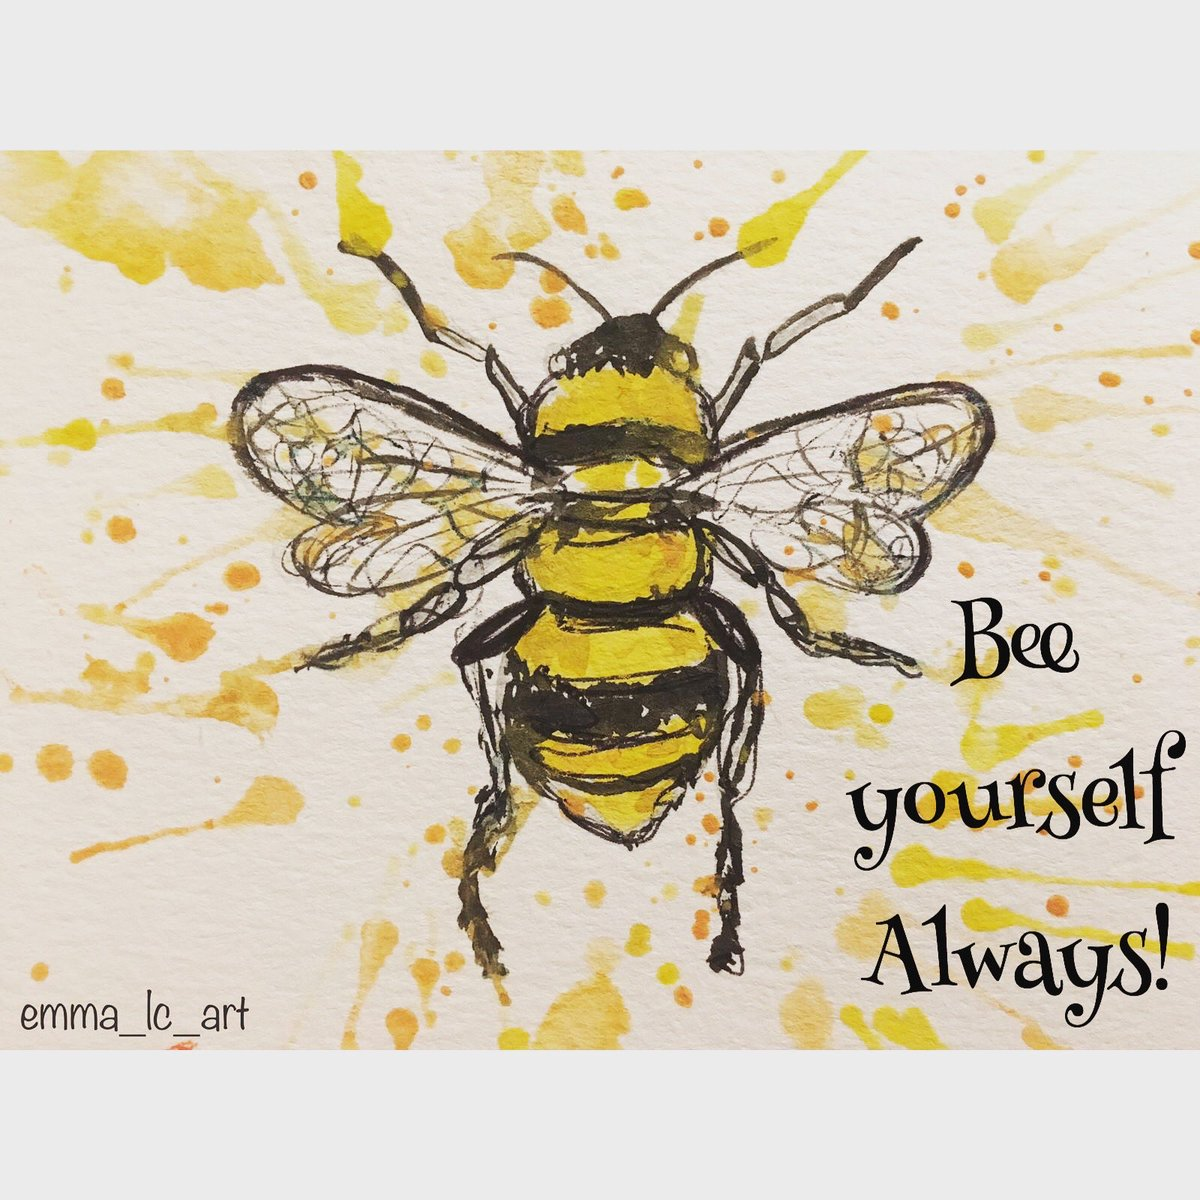 And the winning #positivequoteoftheday💛 as voted for by women attending our groups is the Bee! #beyourself